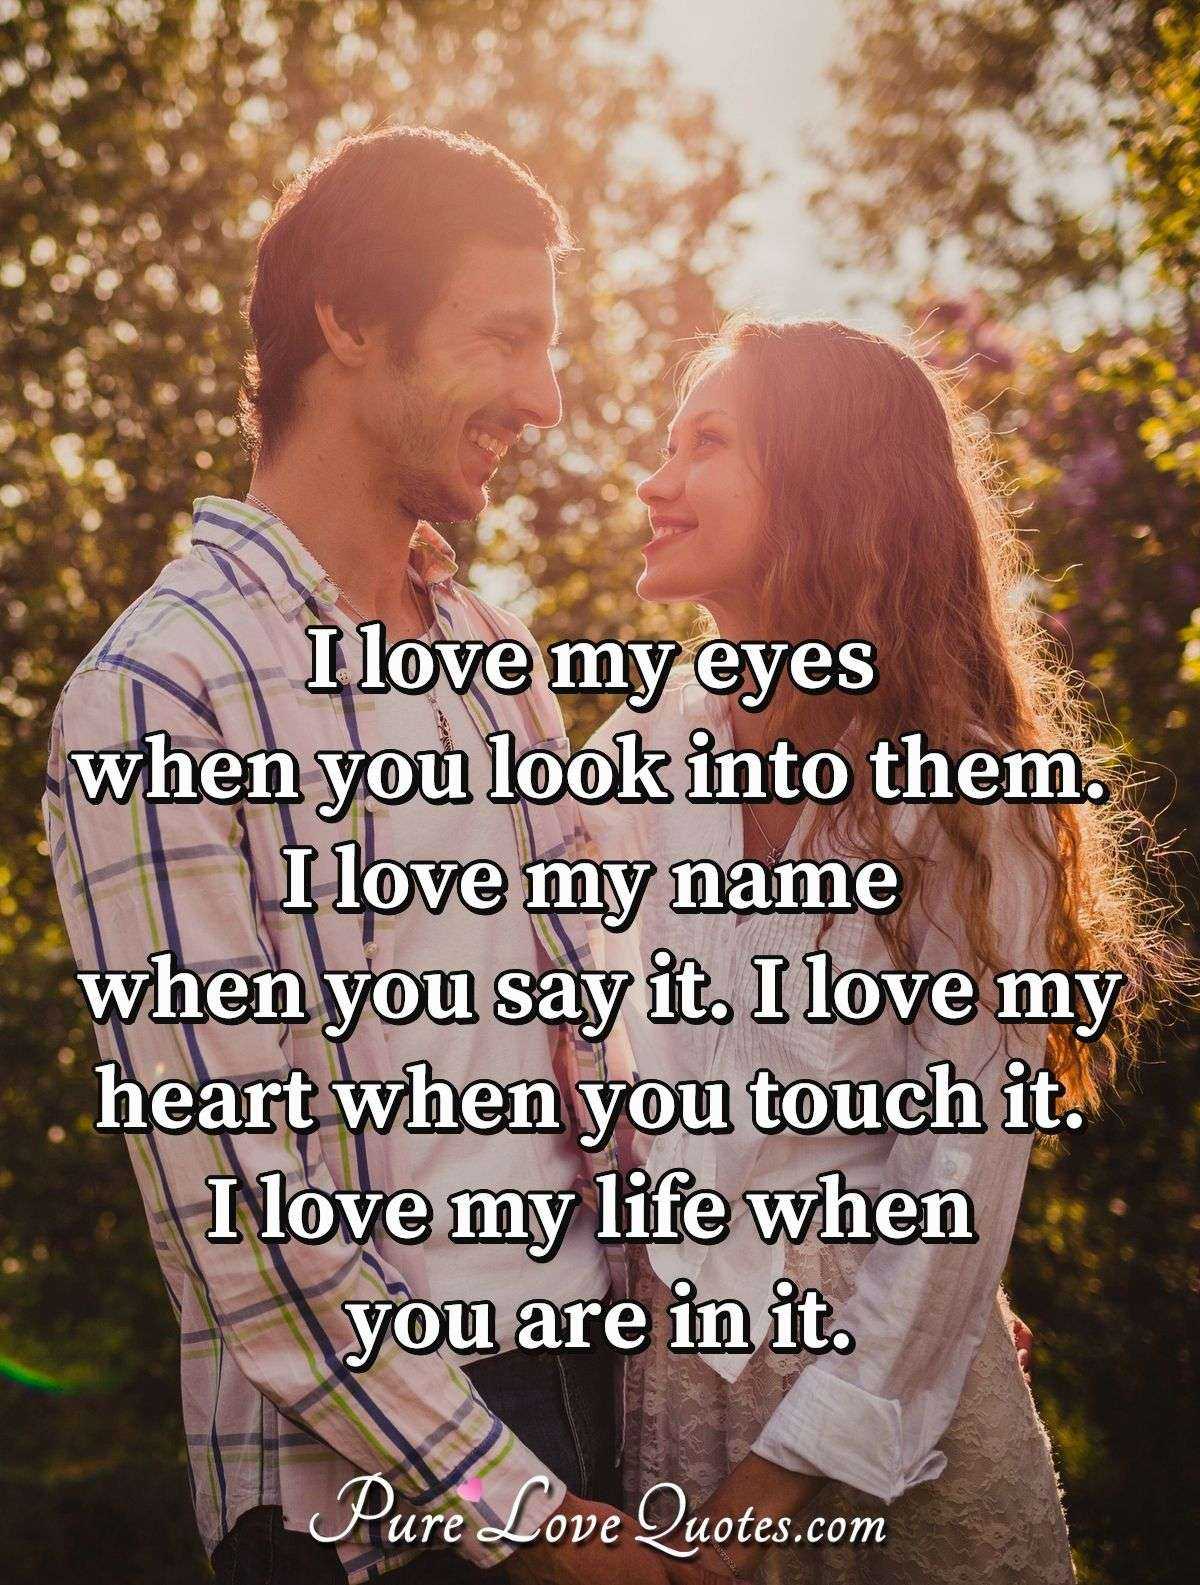 I love my eyes when you look into them. I love my name when you say it. I love my heart when you touch it. I love my life when you are in it. - Anonymous